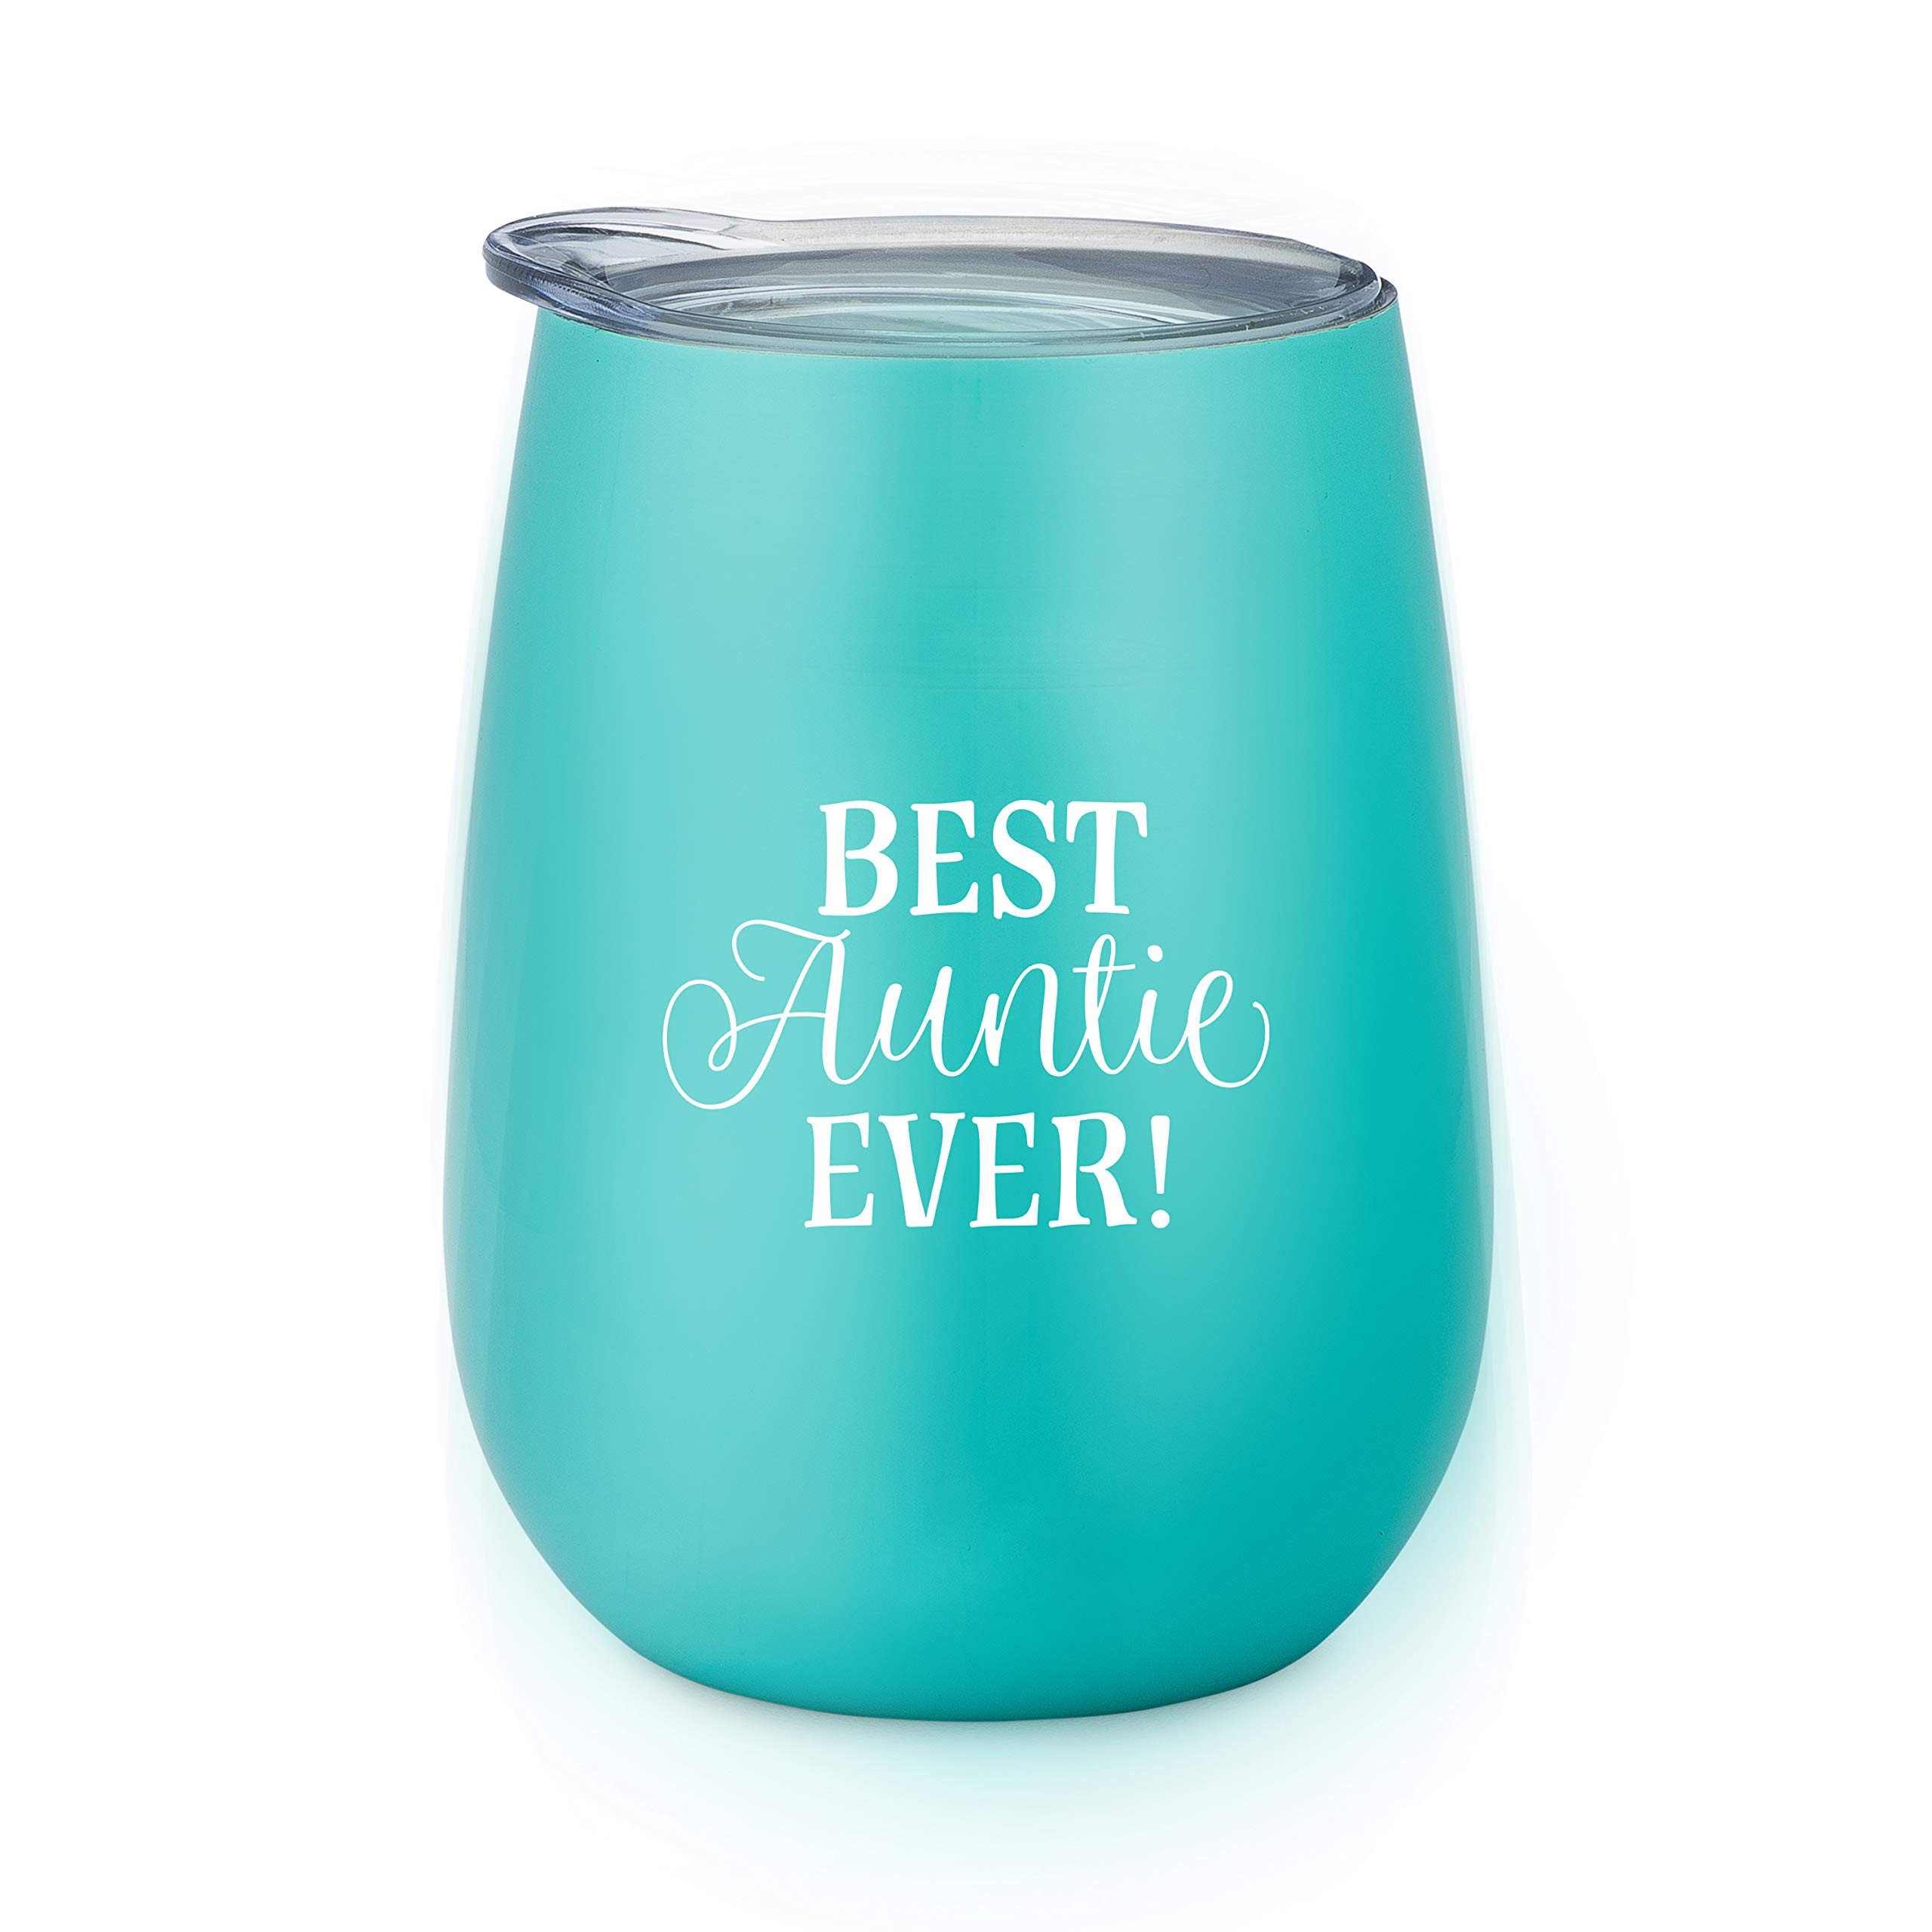 Best Auntie Ever - 10 oz Stainless Steel Stemless Wine Glass with Lid - Wine Tumbler Sippy Cup for Adults - Great Aunt Gift